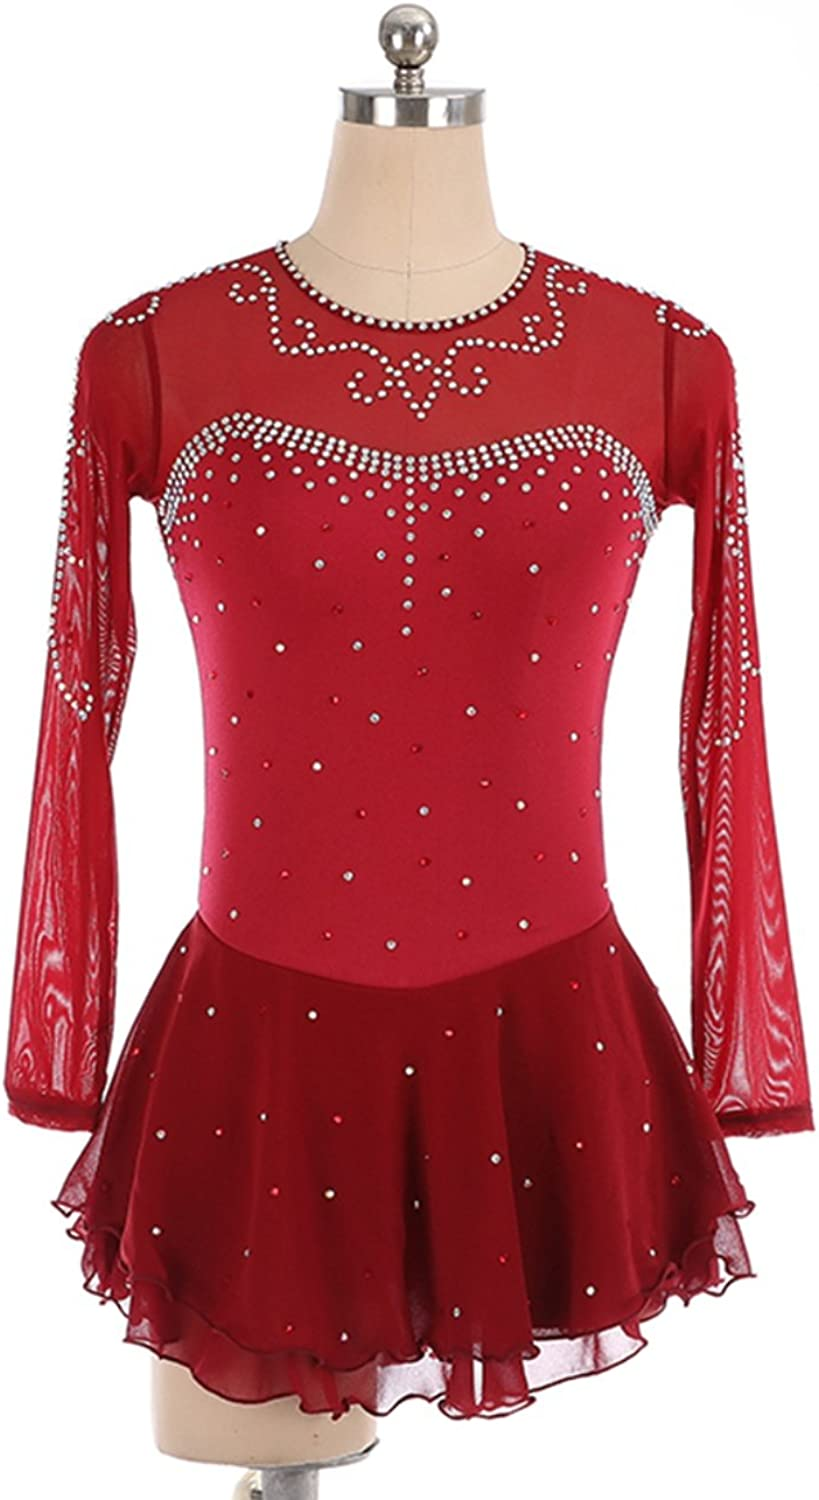 Heart&M Ice Skating Dress for Women, Handmade Figure Skating Competition Costume Nylon Skating Dress Crystals Long Sleeved Red